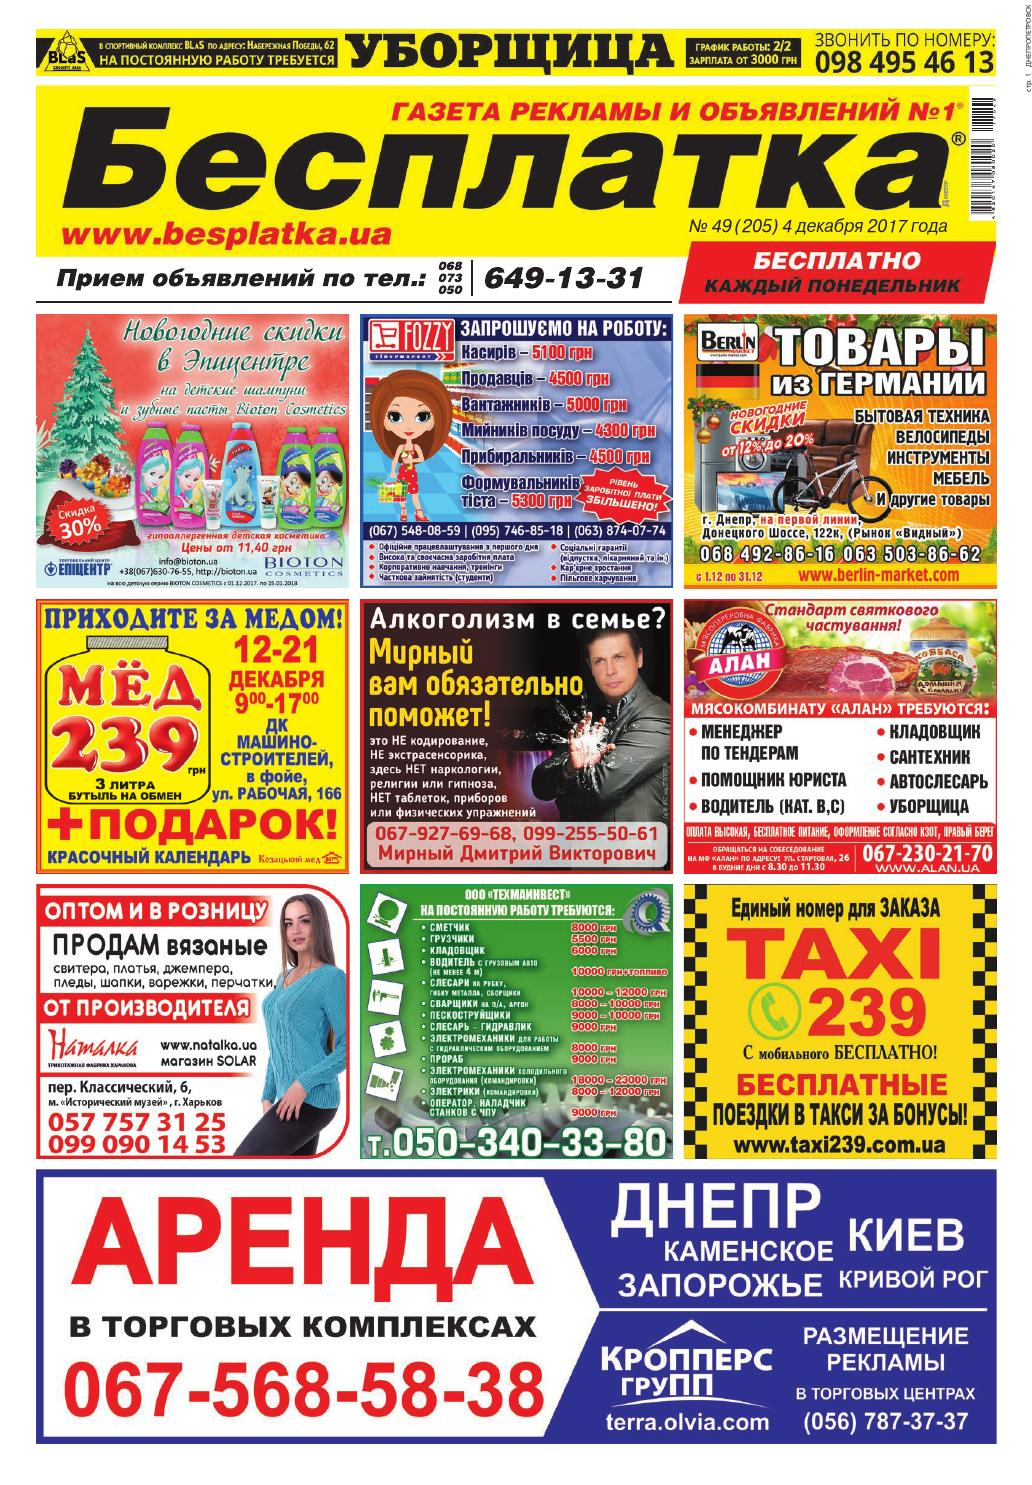 Besplatka  49 Днепр by besplatka ukraine - issuu c05b9b59378